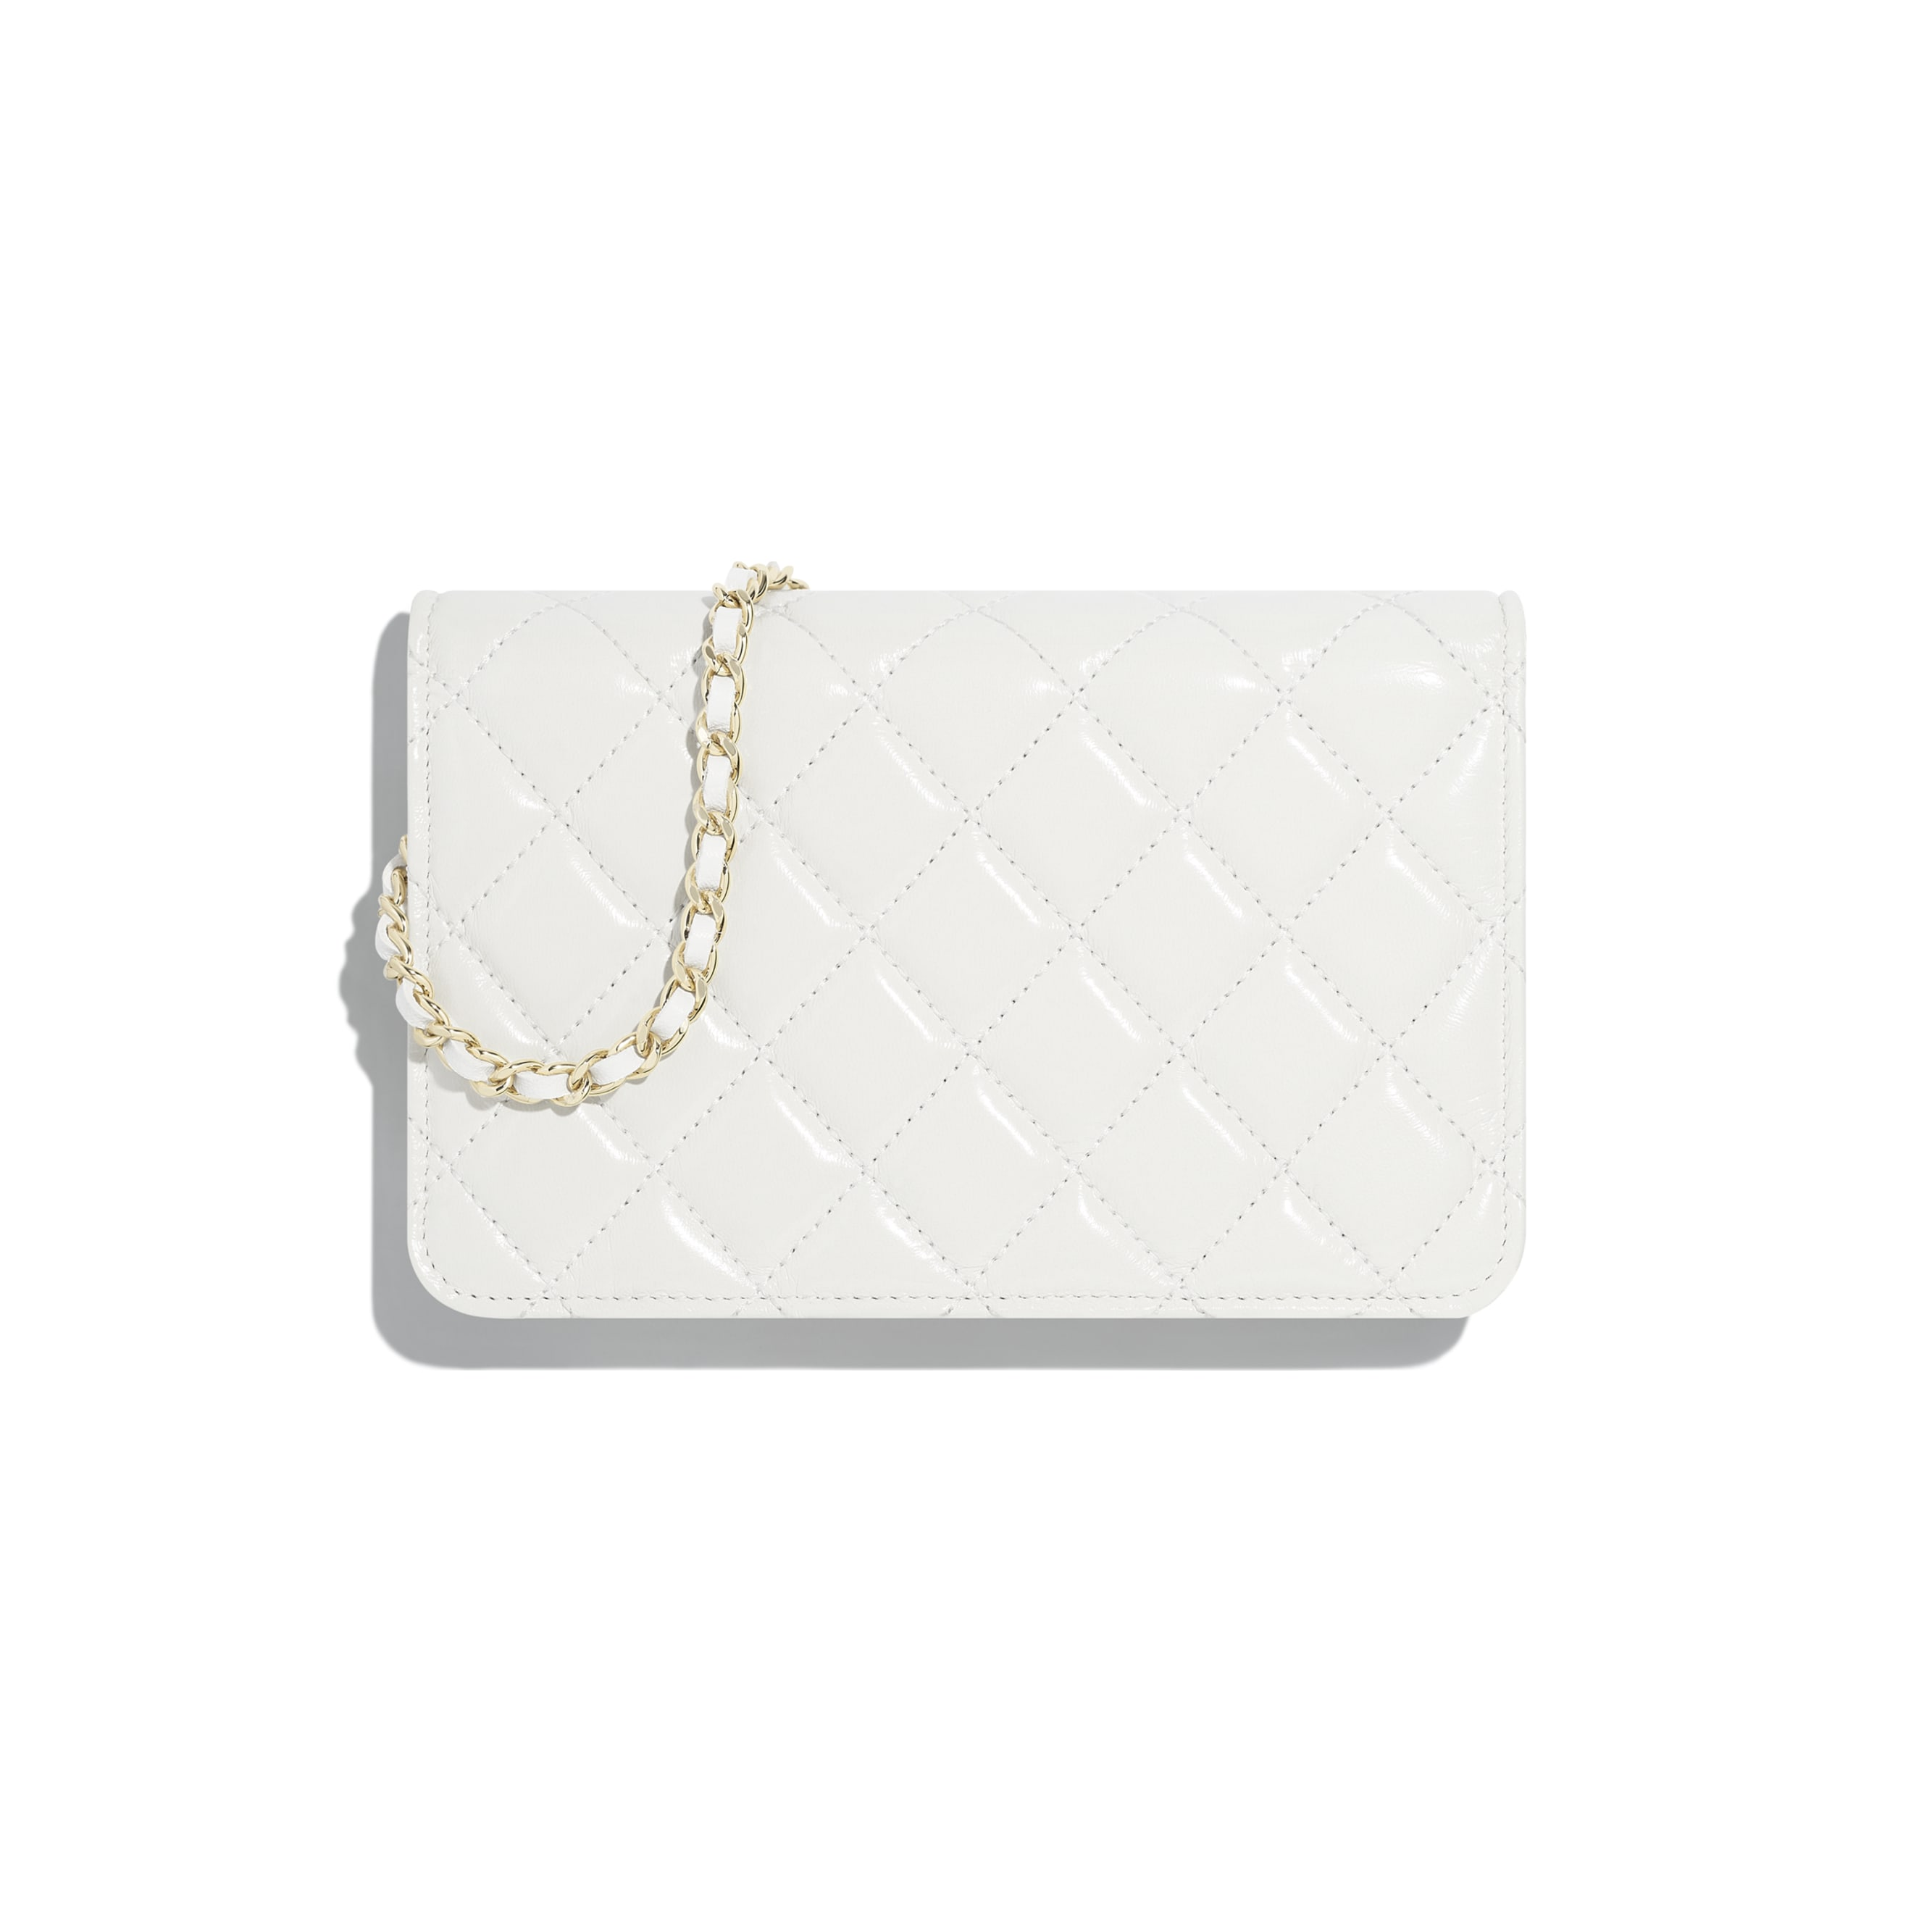 Wallet On Chain - White - Shiny Lambskin & Gold-Tone Metal - Alternative view - see standard sized version